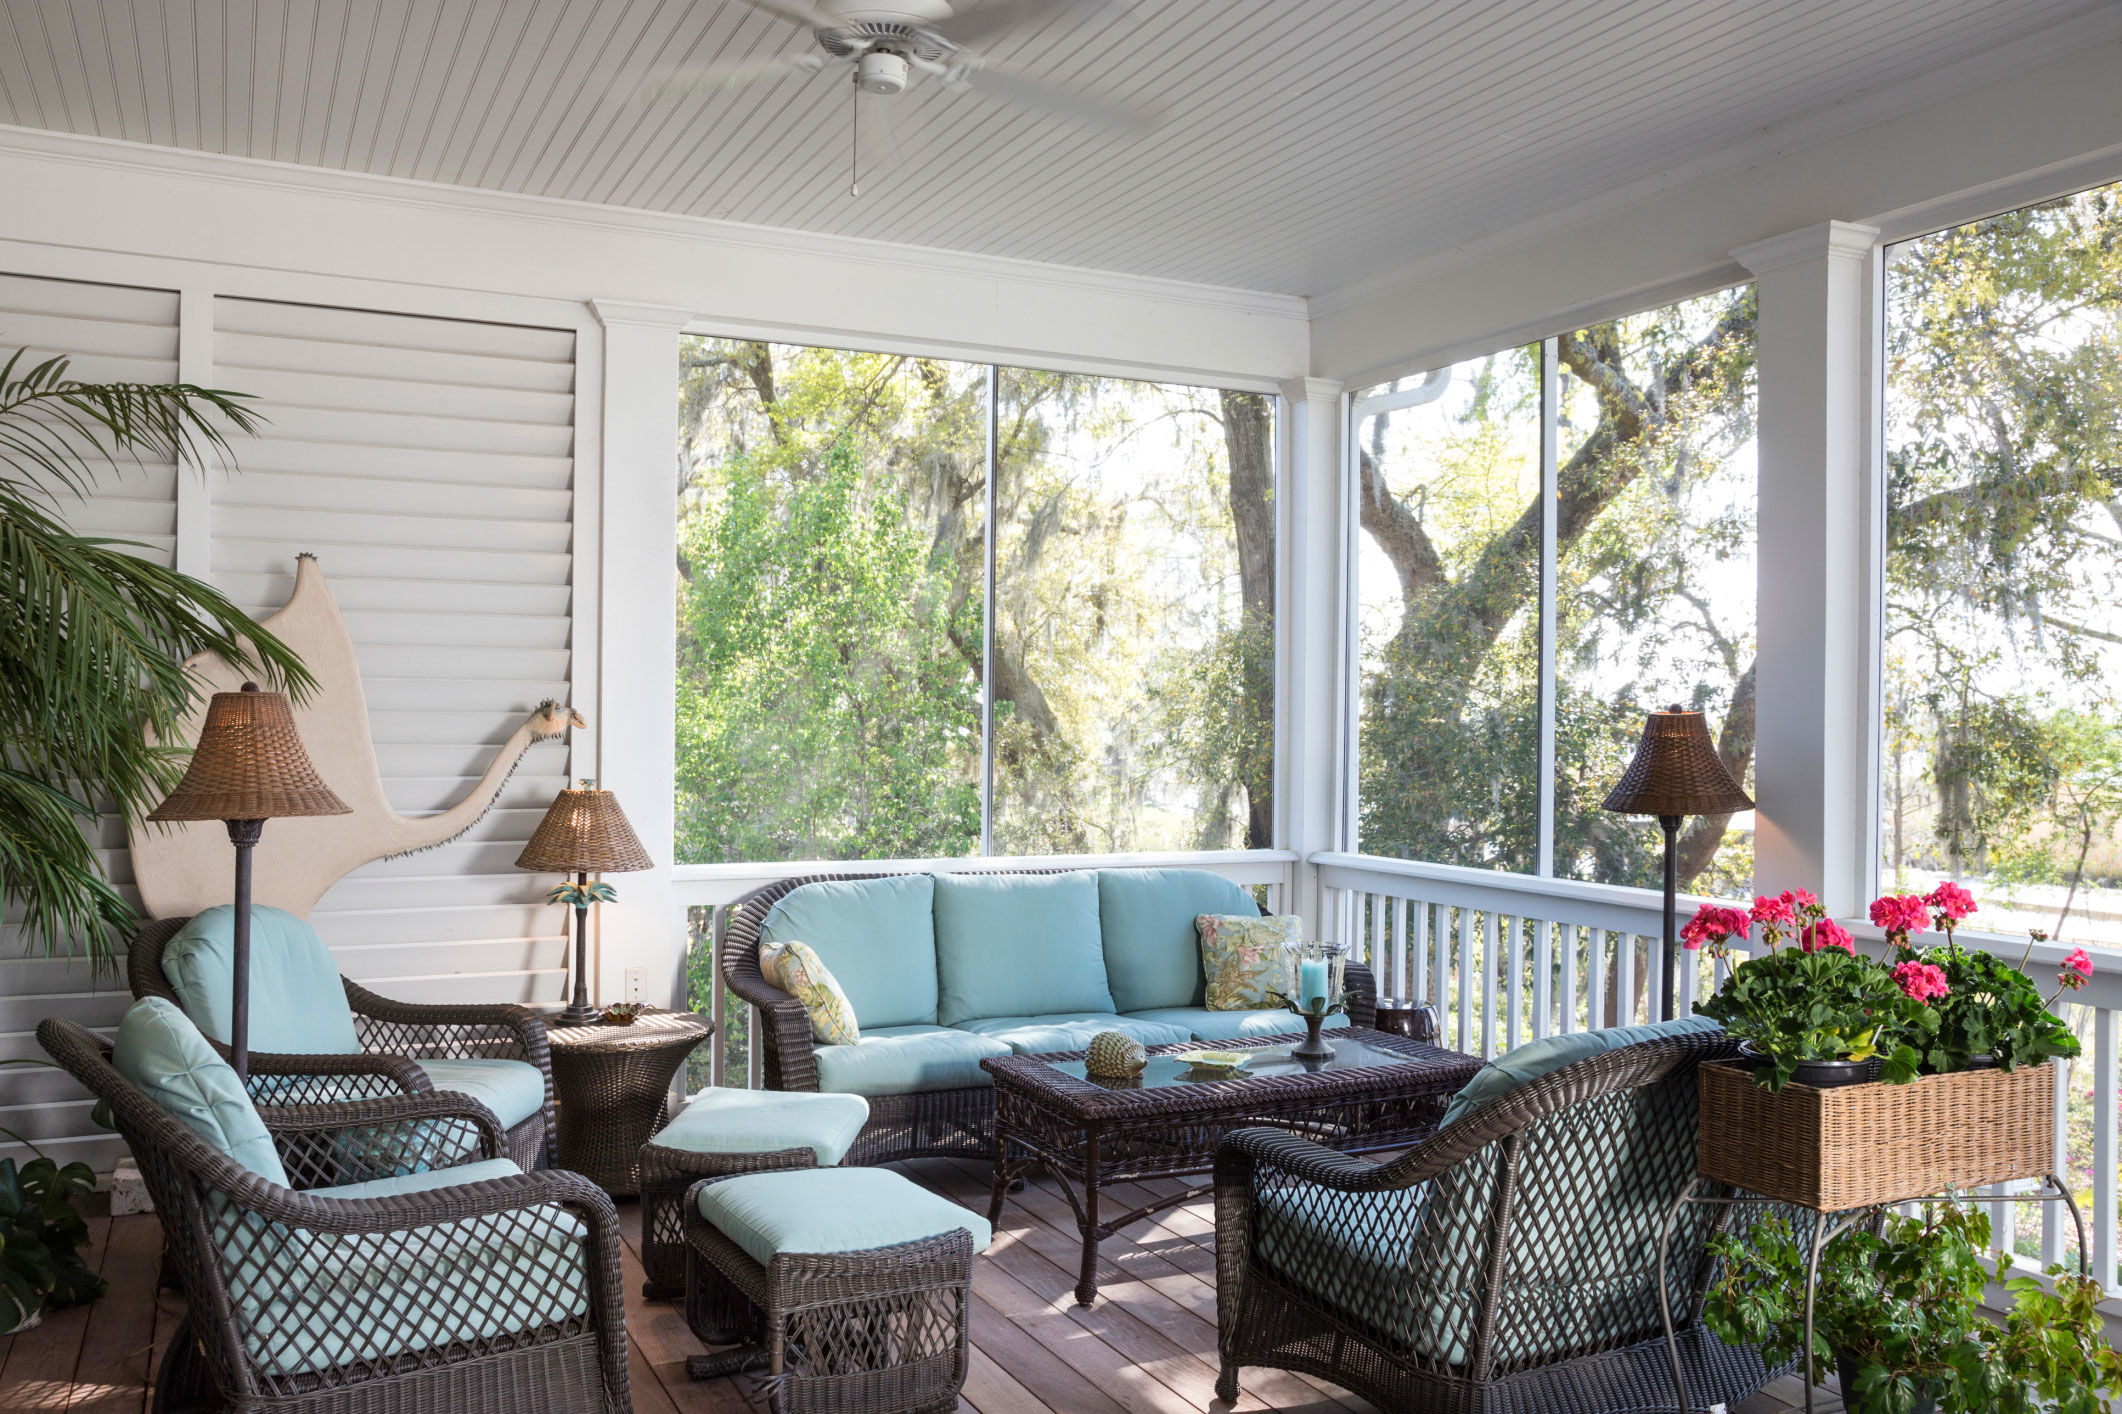 5 Tips For Your Screened-In Porch from Designer Elle Cole